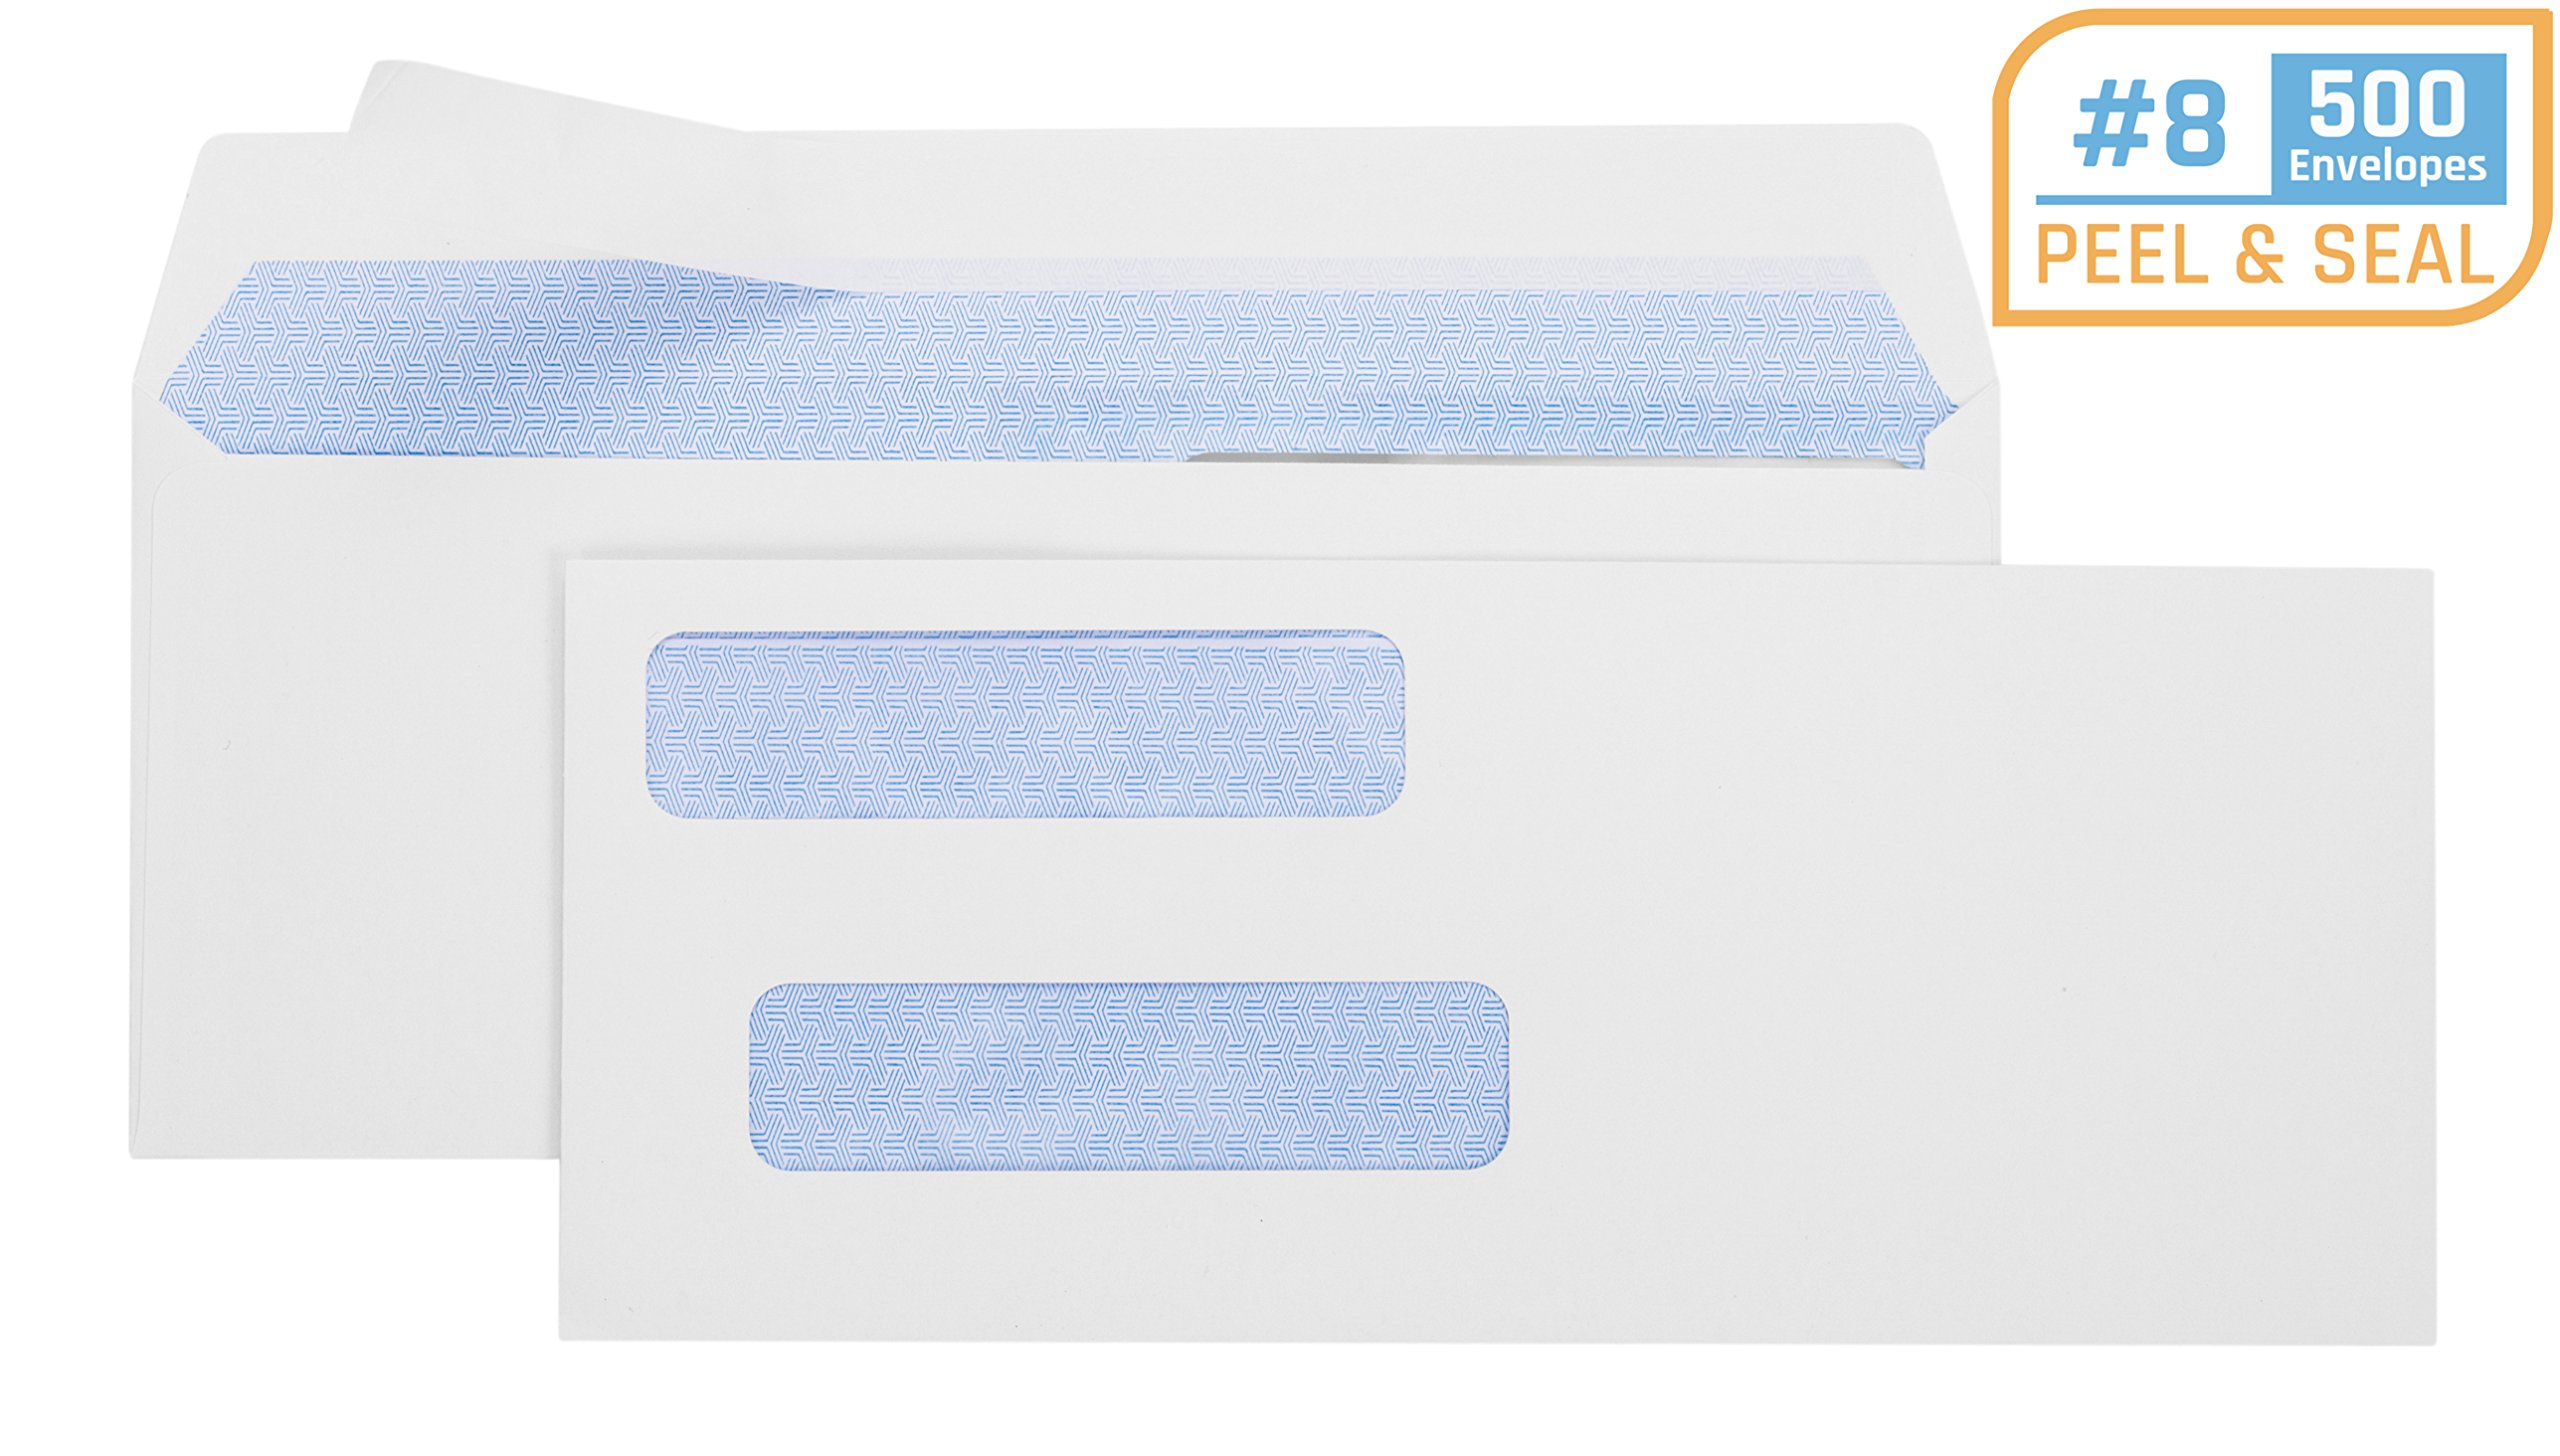 Office Deed 500 Pack #8 Double Window Envelope SELF Seal Adhesive Tinted Security Envelopes Quickbooks Check, Business Check, Documents Secure Mailing, 3 5/8'' x 8 11/16'', White Envelope